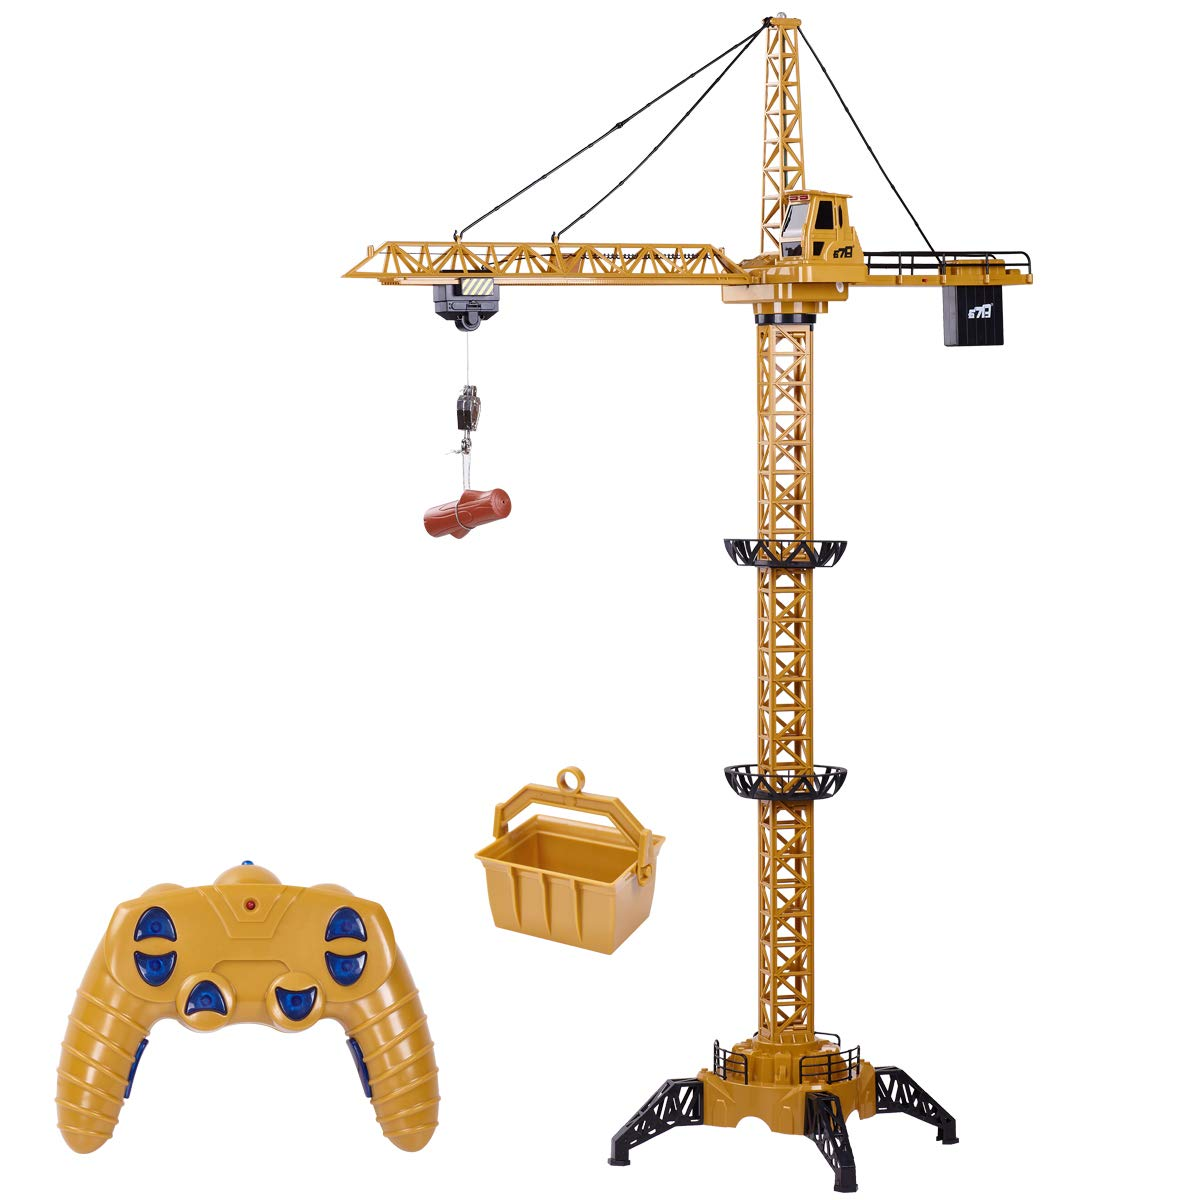 Fistone 6 Channel RC Tower Crane, 50.4 inches 680 Degree Rotation Lift Model 2.4GHz Remote Control Construction Crane Toy with Tower Light and Simulation Sound for Kids by Fistone (Image #1)